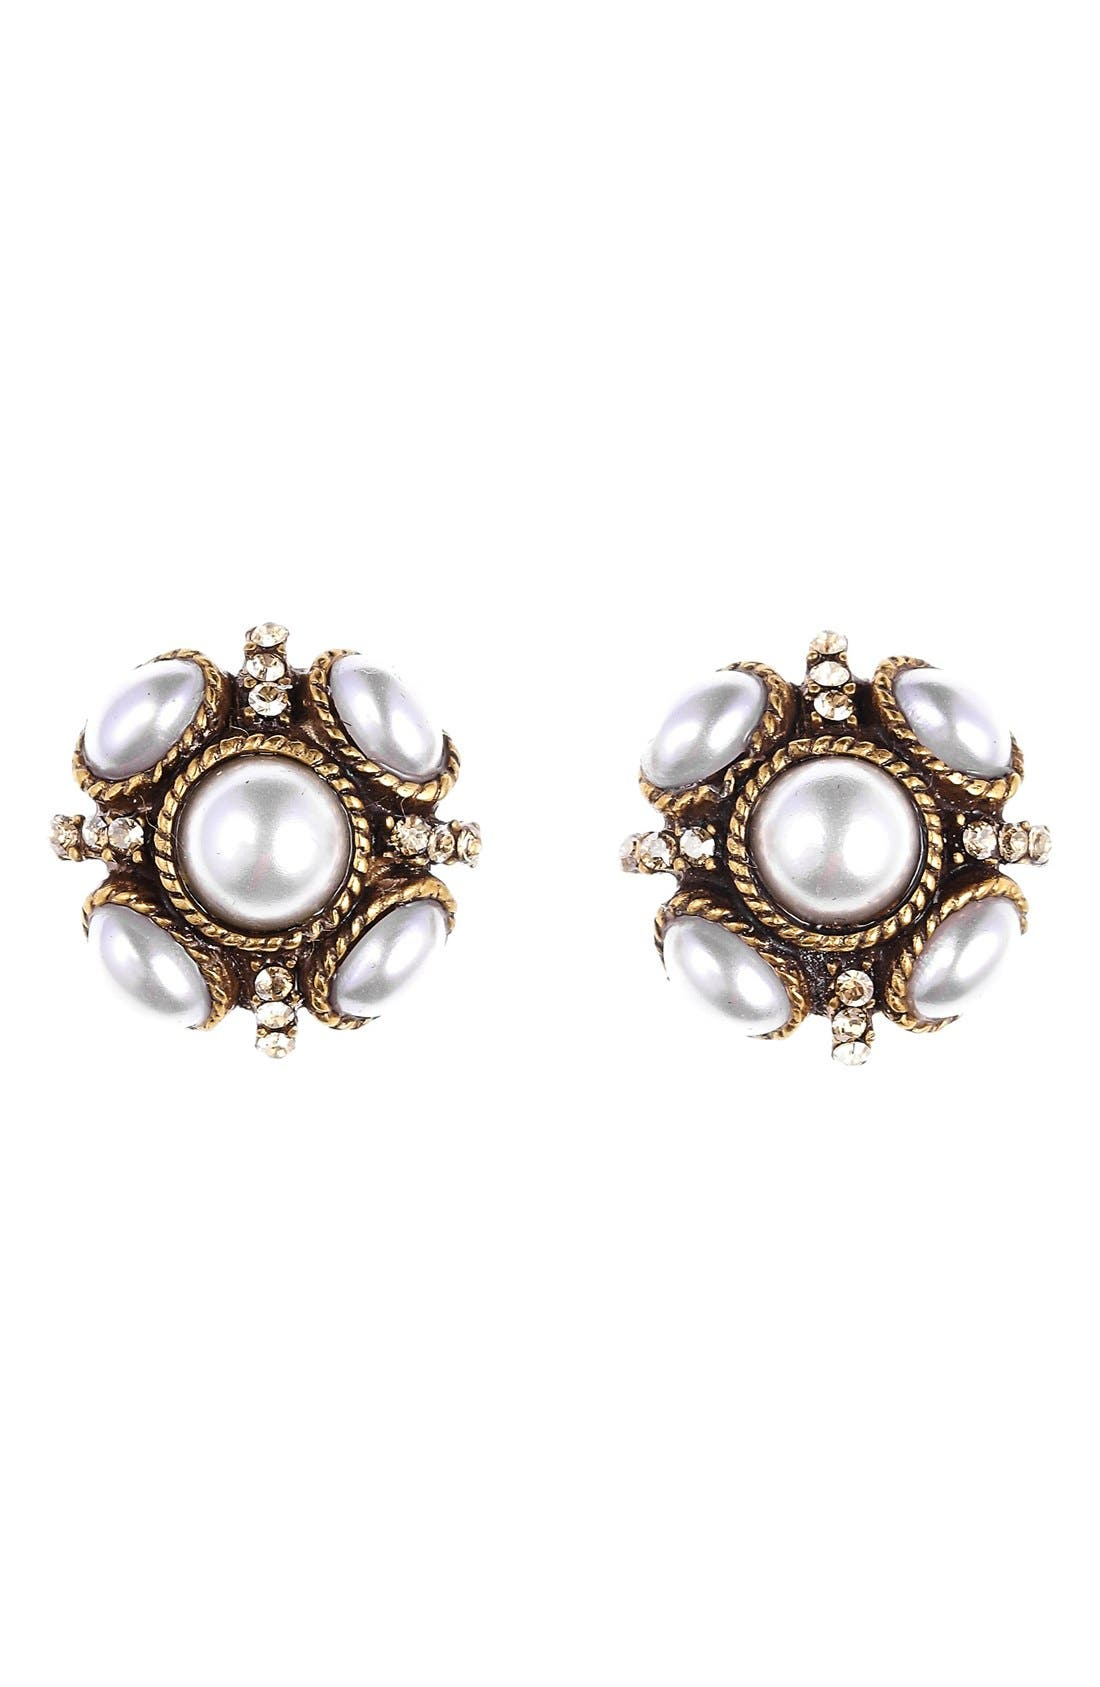 Oscar de la Renta 'Classic Button' Stud Earrings